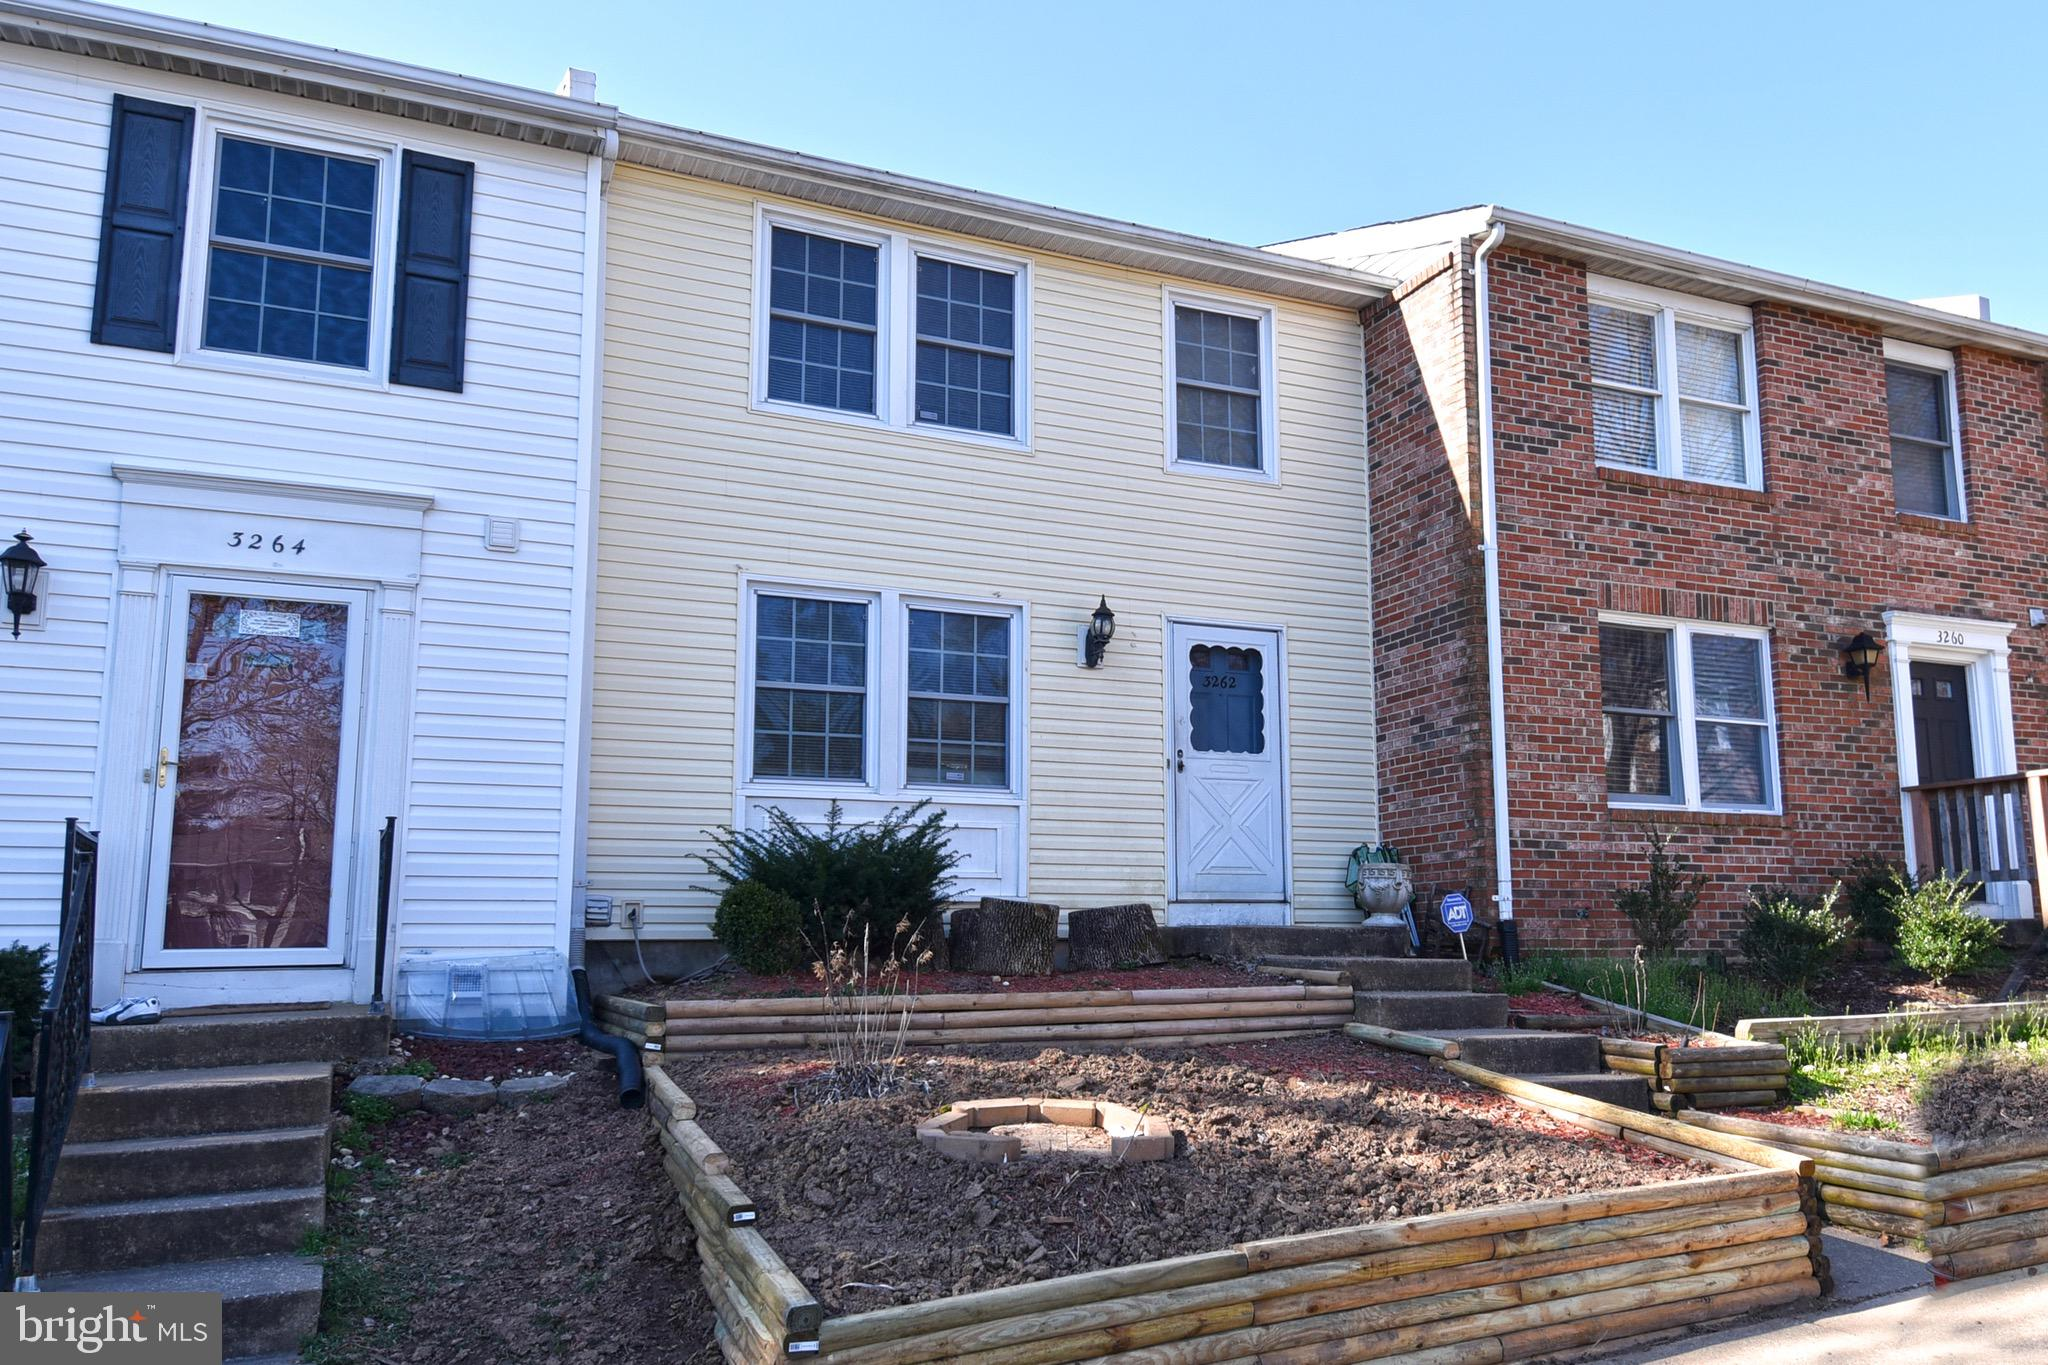 PLEASE GIVE 24 HOUR NOTICE FOR SHOWINGS.GREAT LOCATION! 3 BEDROOMS 3 LEVEL TOWNHOUSE IN ROLLINGWOOD VILLAGE! CLOSE TO SHOPPING & RESTAURANTS. EASY ACCESS TO COMMUTING ROUTES. PERFECT STARTER HOME.